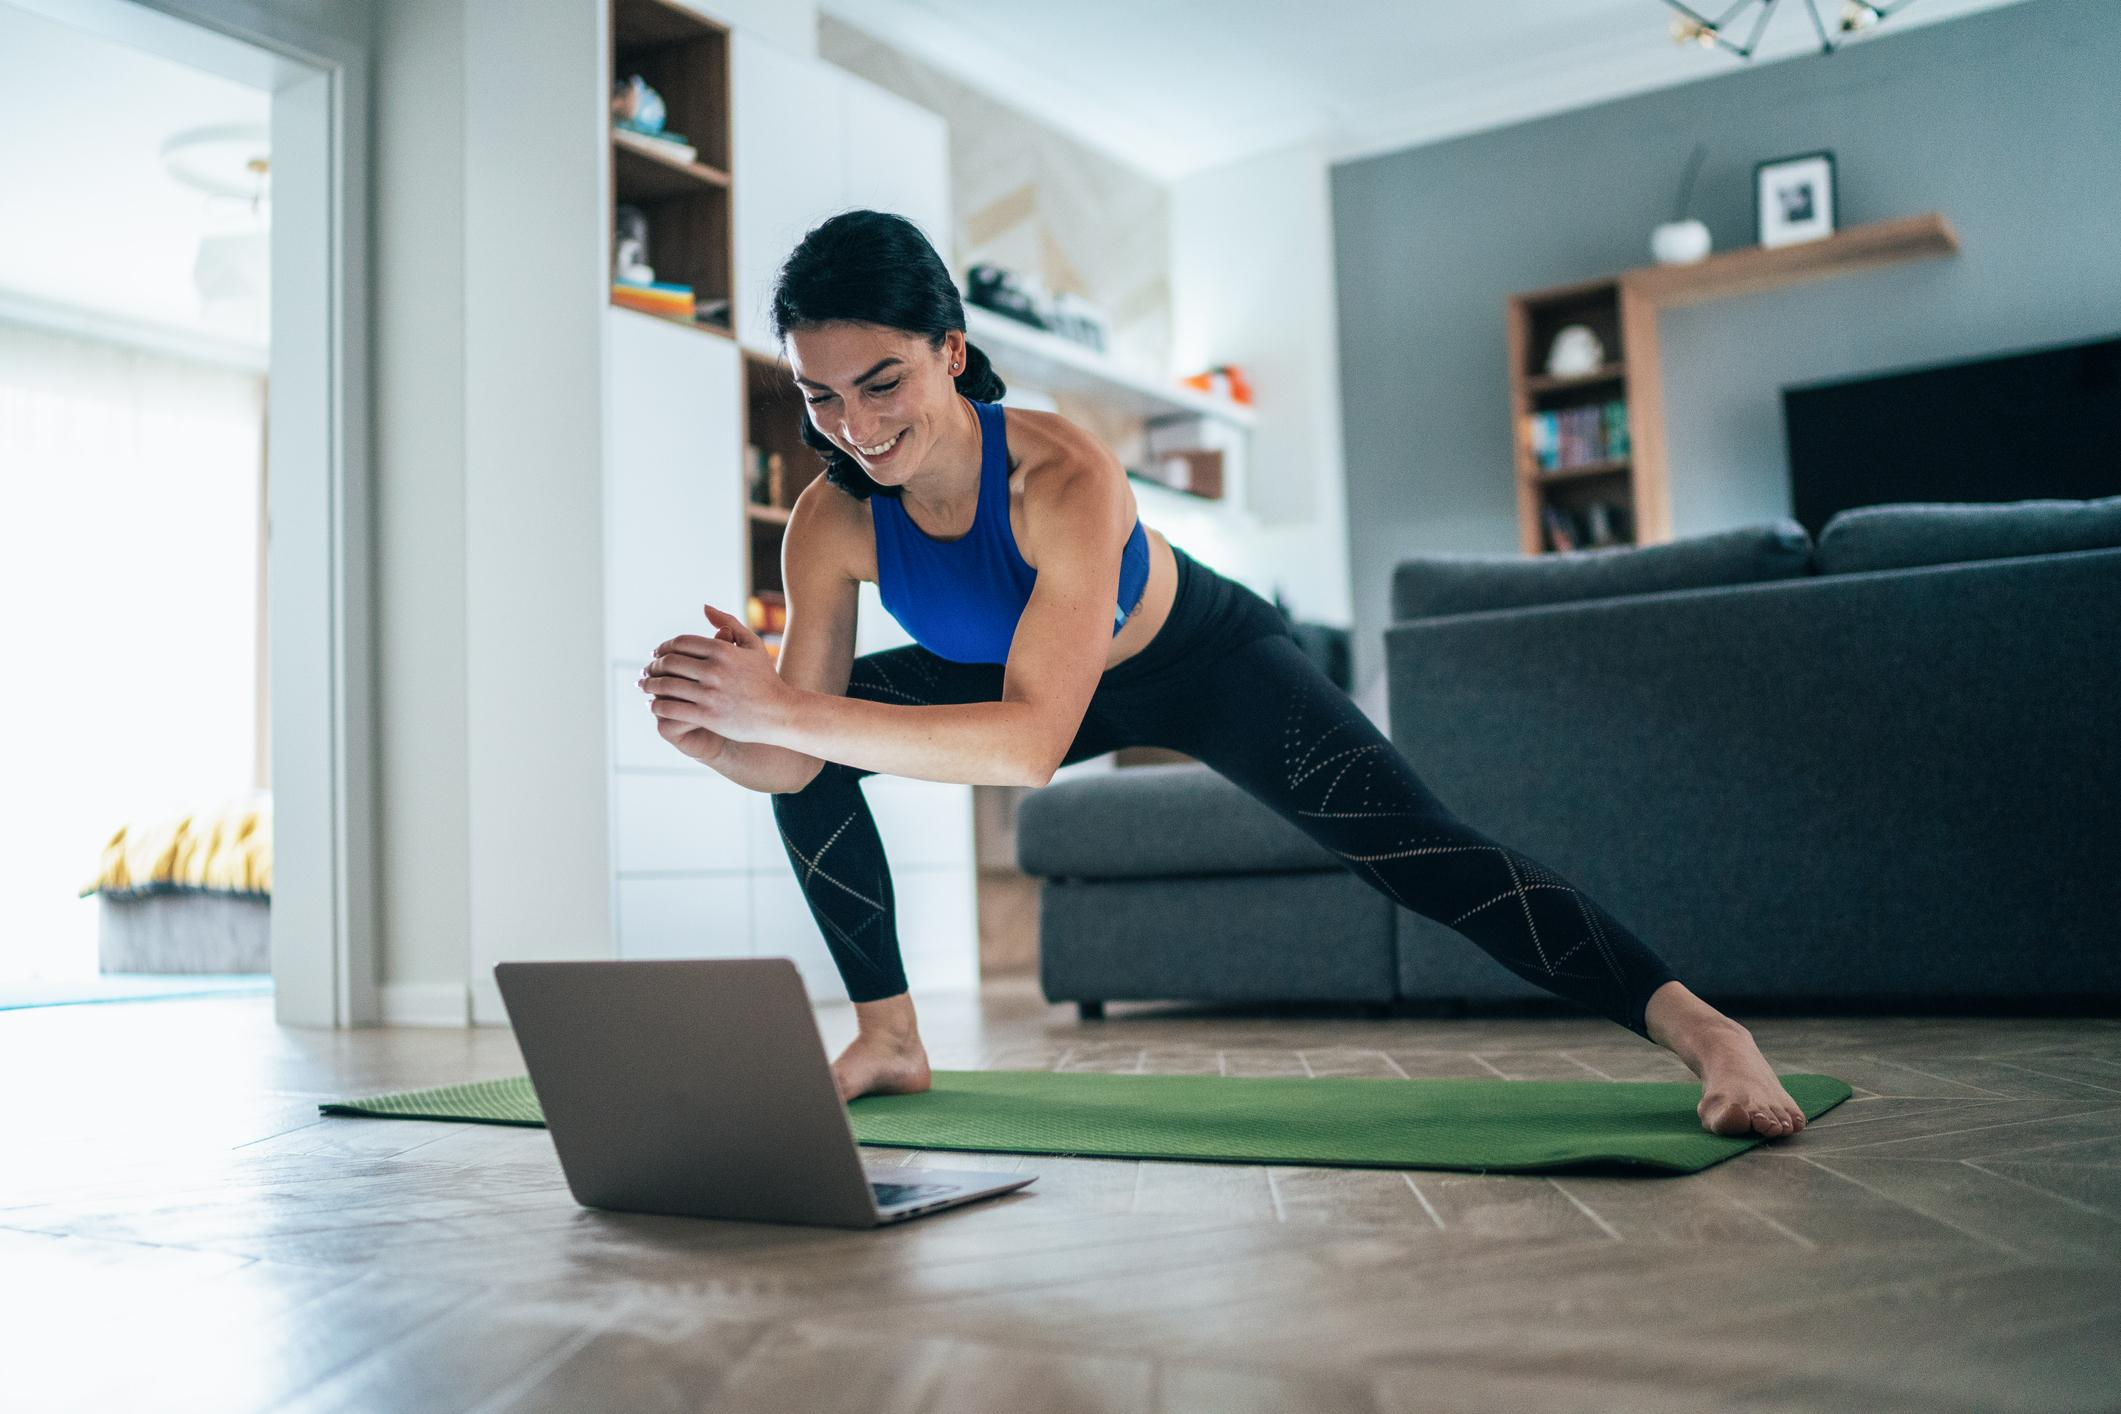 Woman stretching at home with laptop